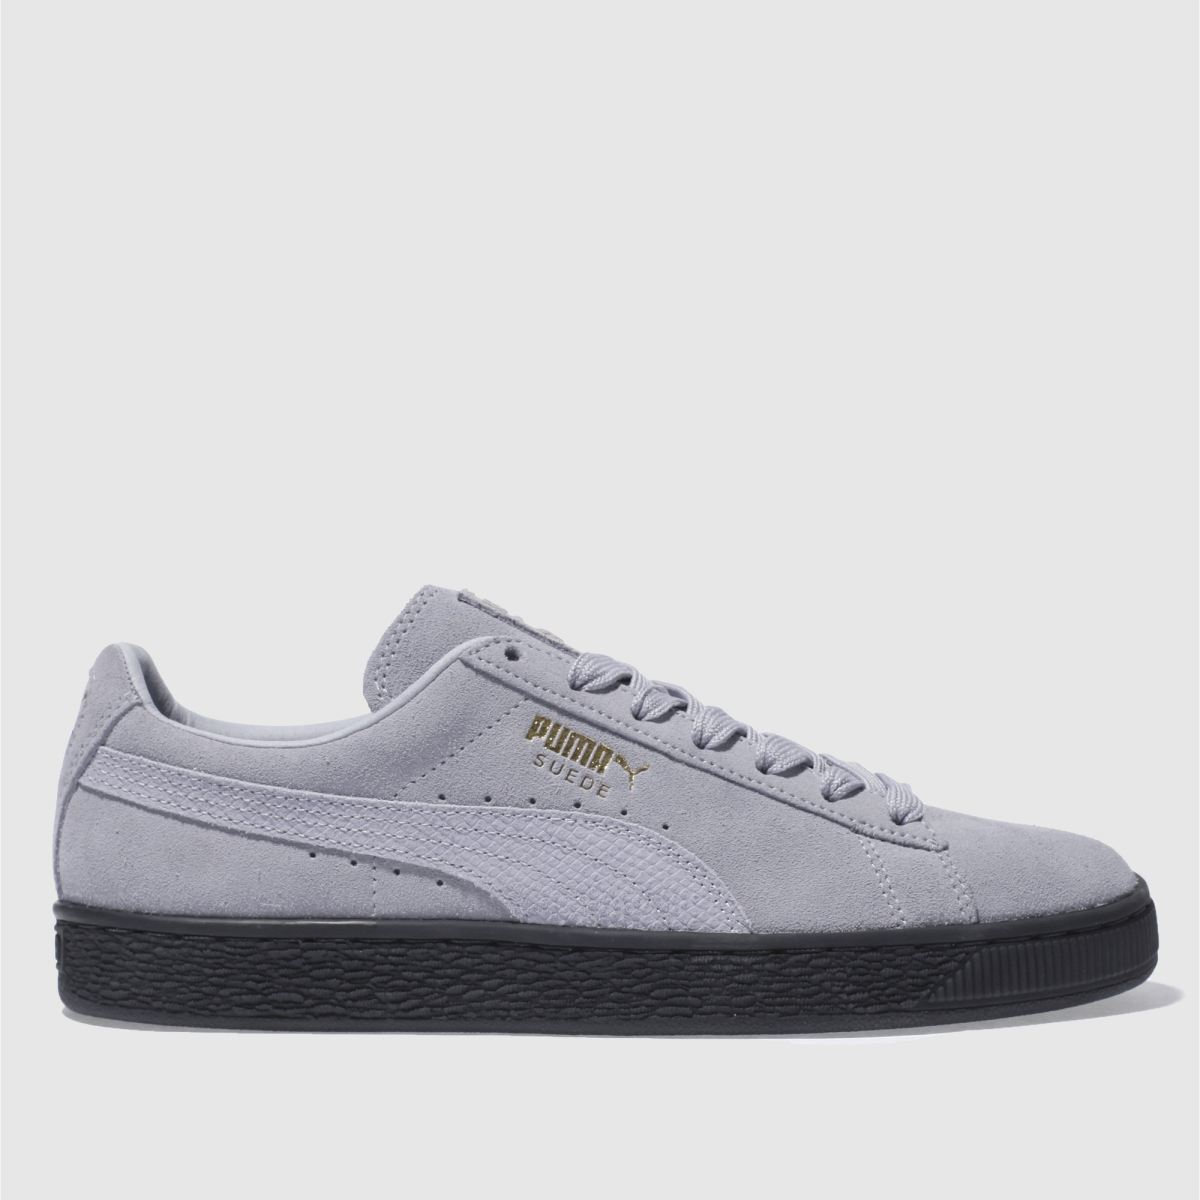 Puma Pale Lilac Suede Animal Trainers